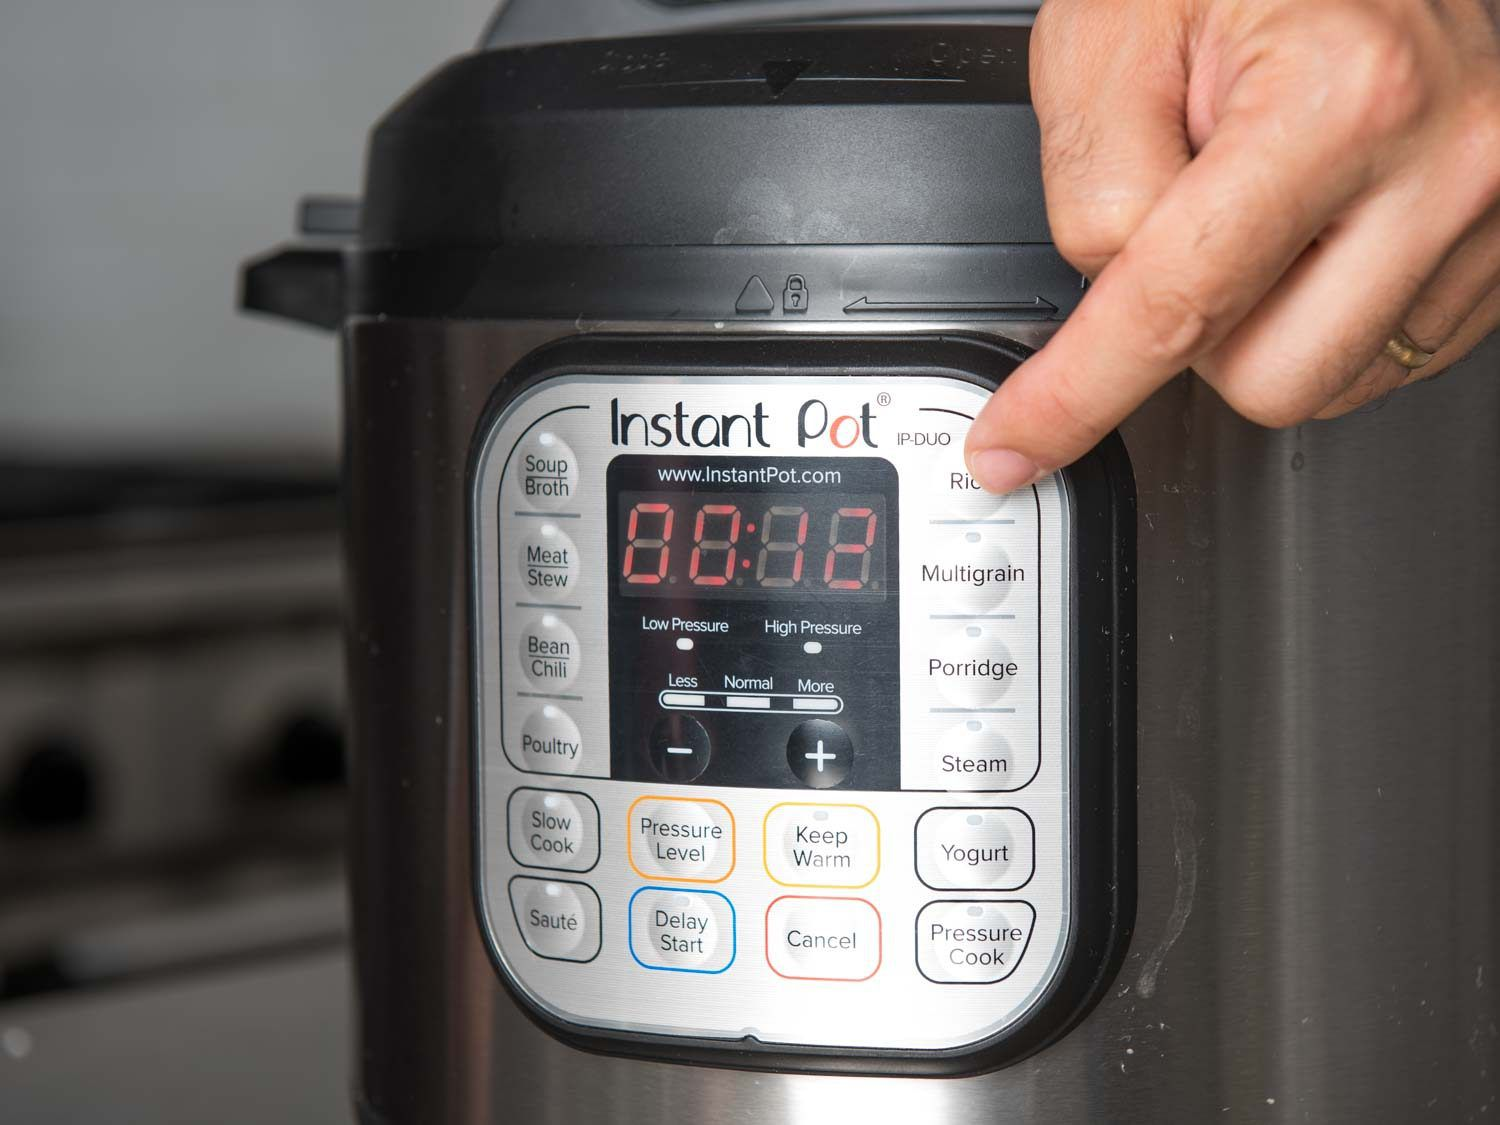 Person selecting rice function on Instant Pot multi-cooker